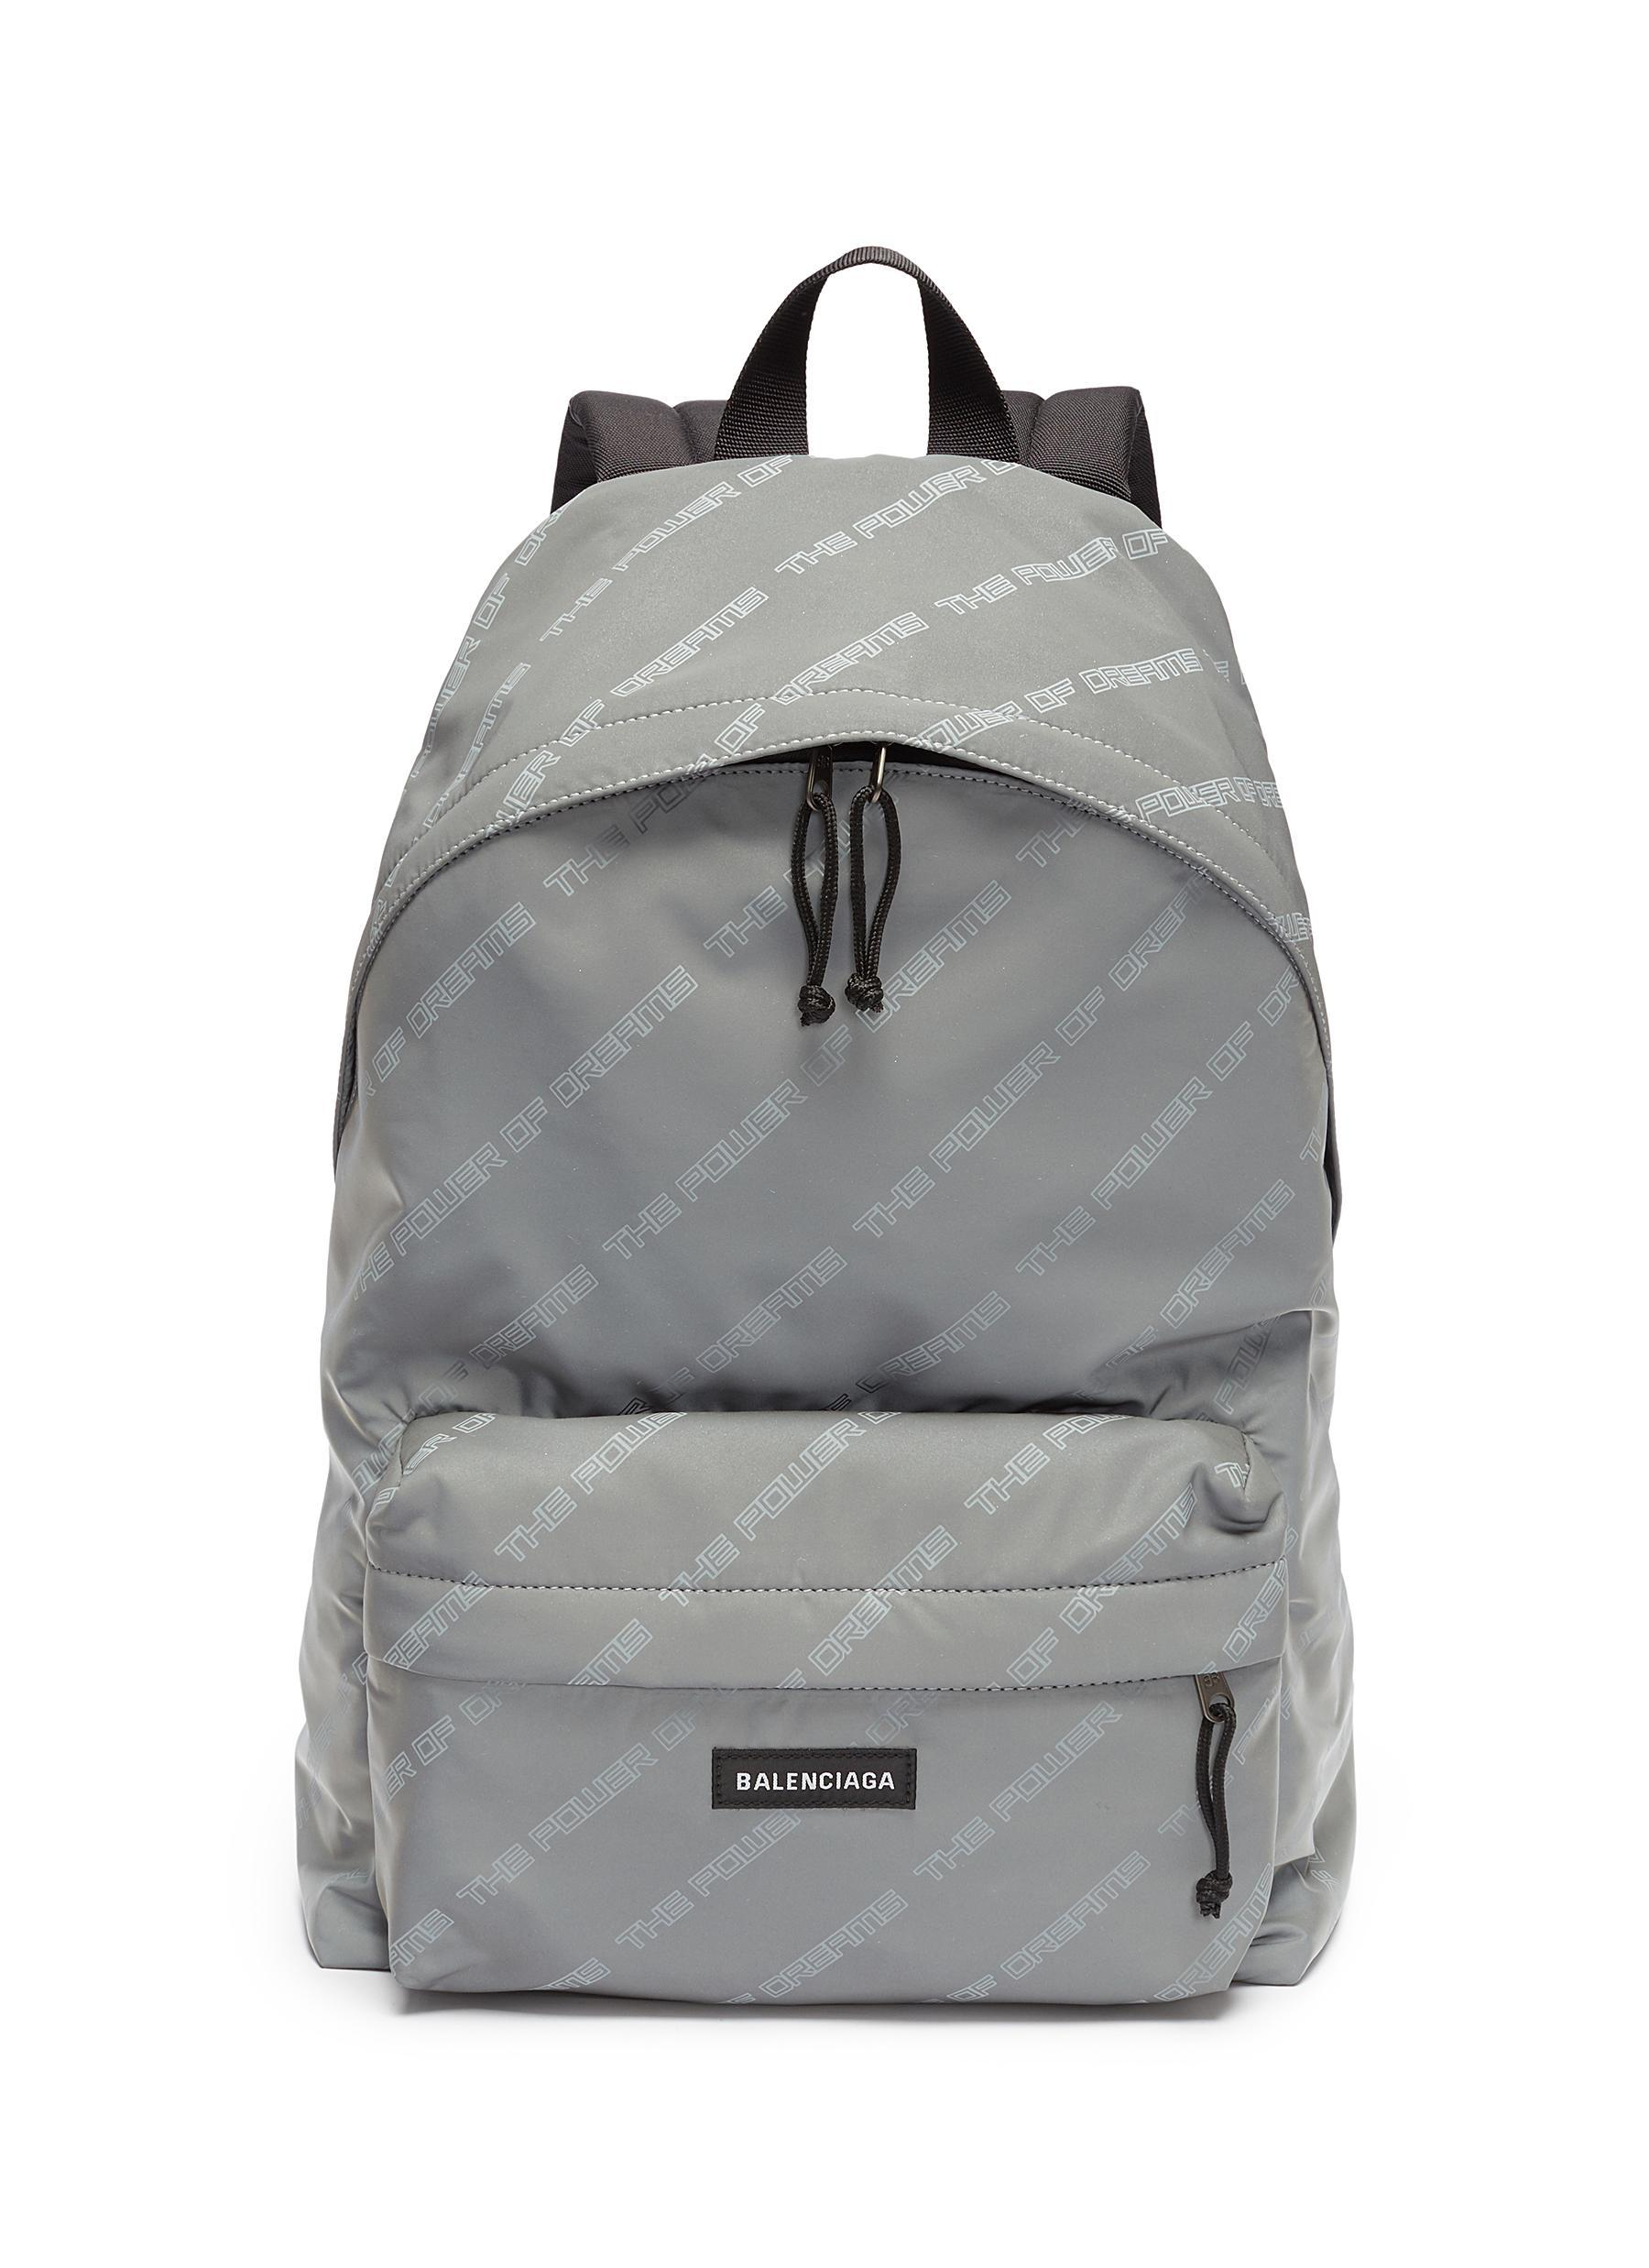 The Power of Dreams backpack - Grey Balenciaga Free Shipping Exclusive Get To Buy Cheap Price 7D0EBd